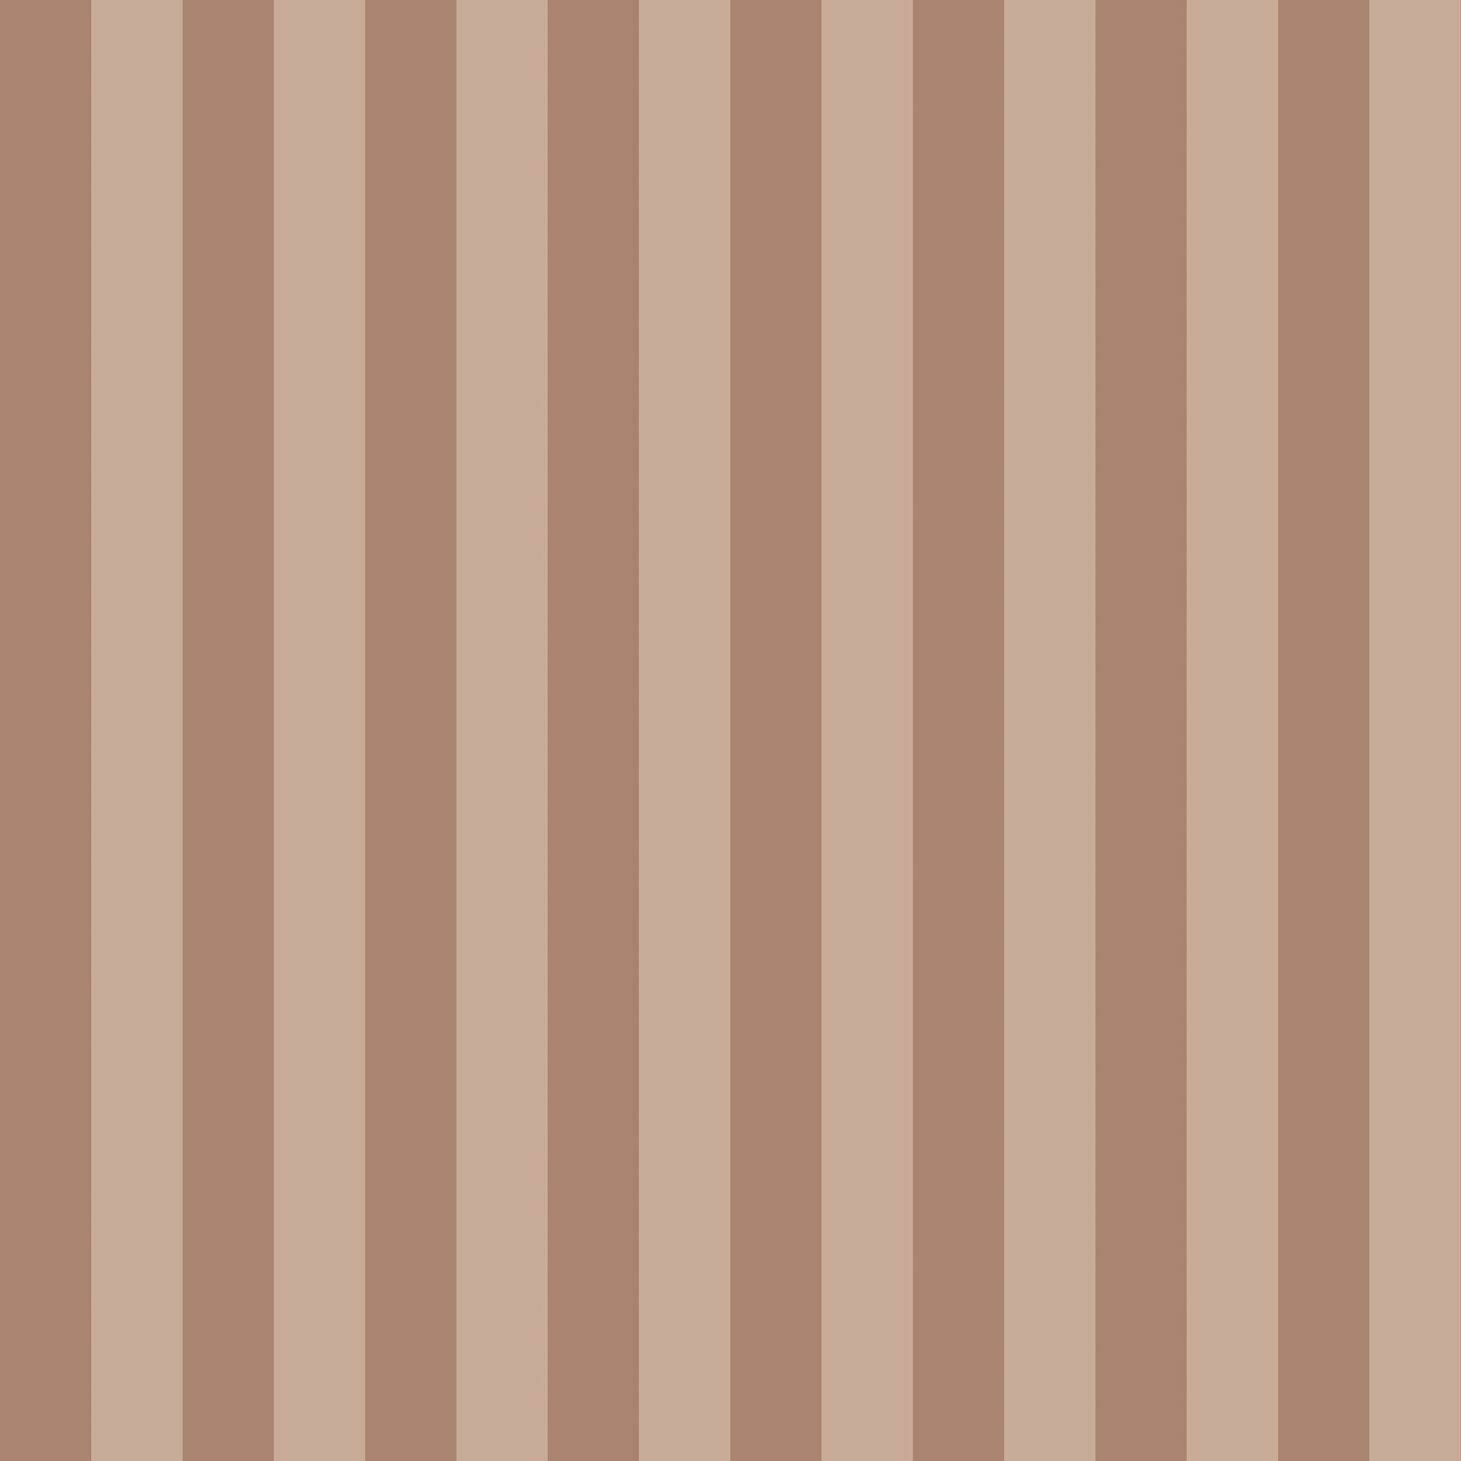 Essener Tapete Simply Stripes 3 ST36904 brau Streifen gestreift Vinyltapete